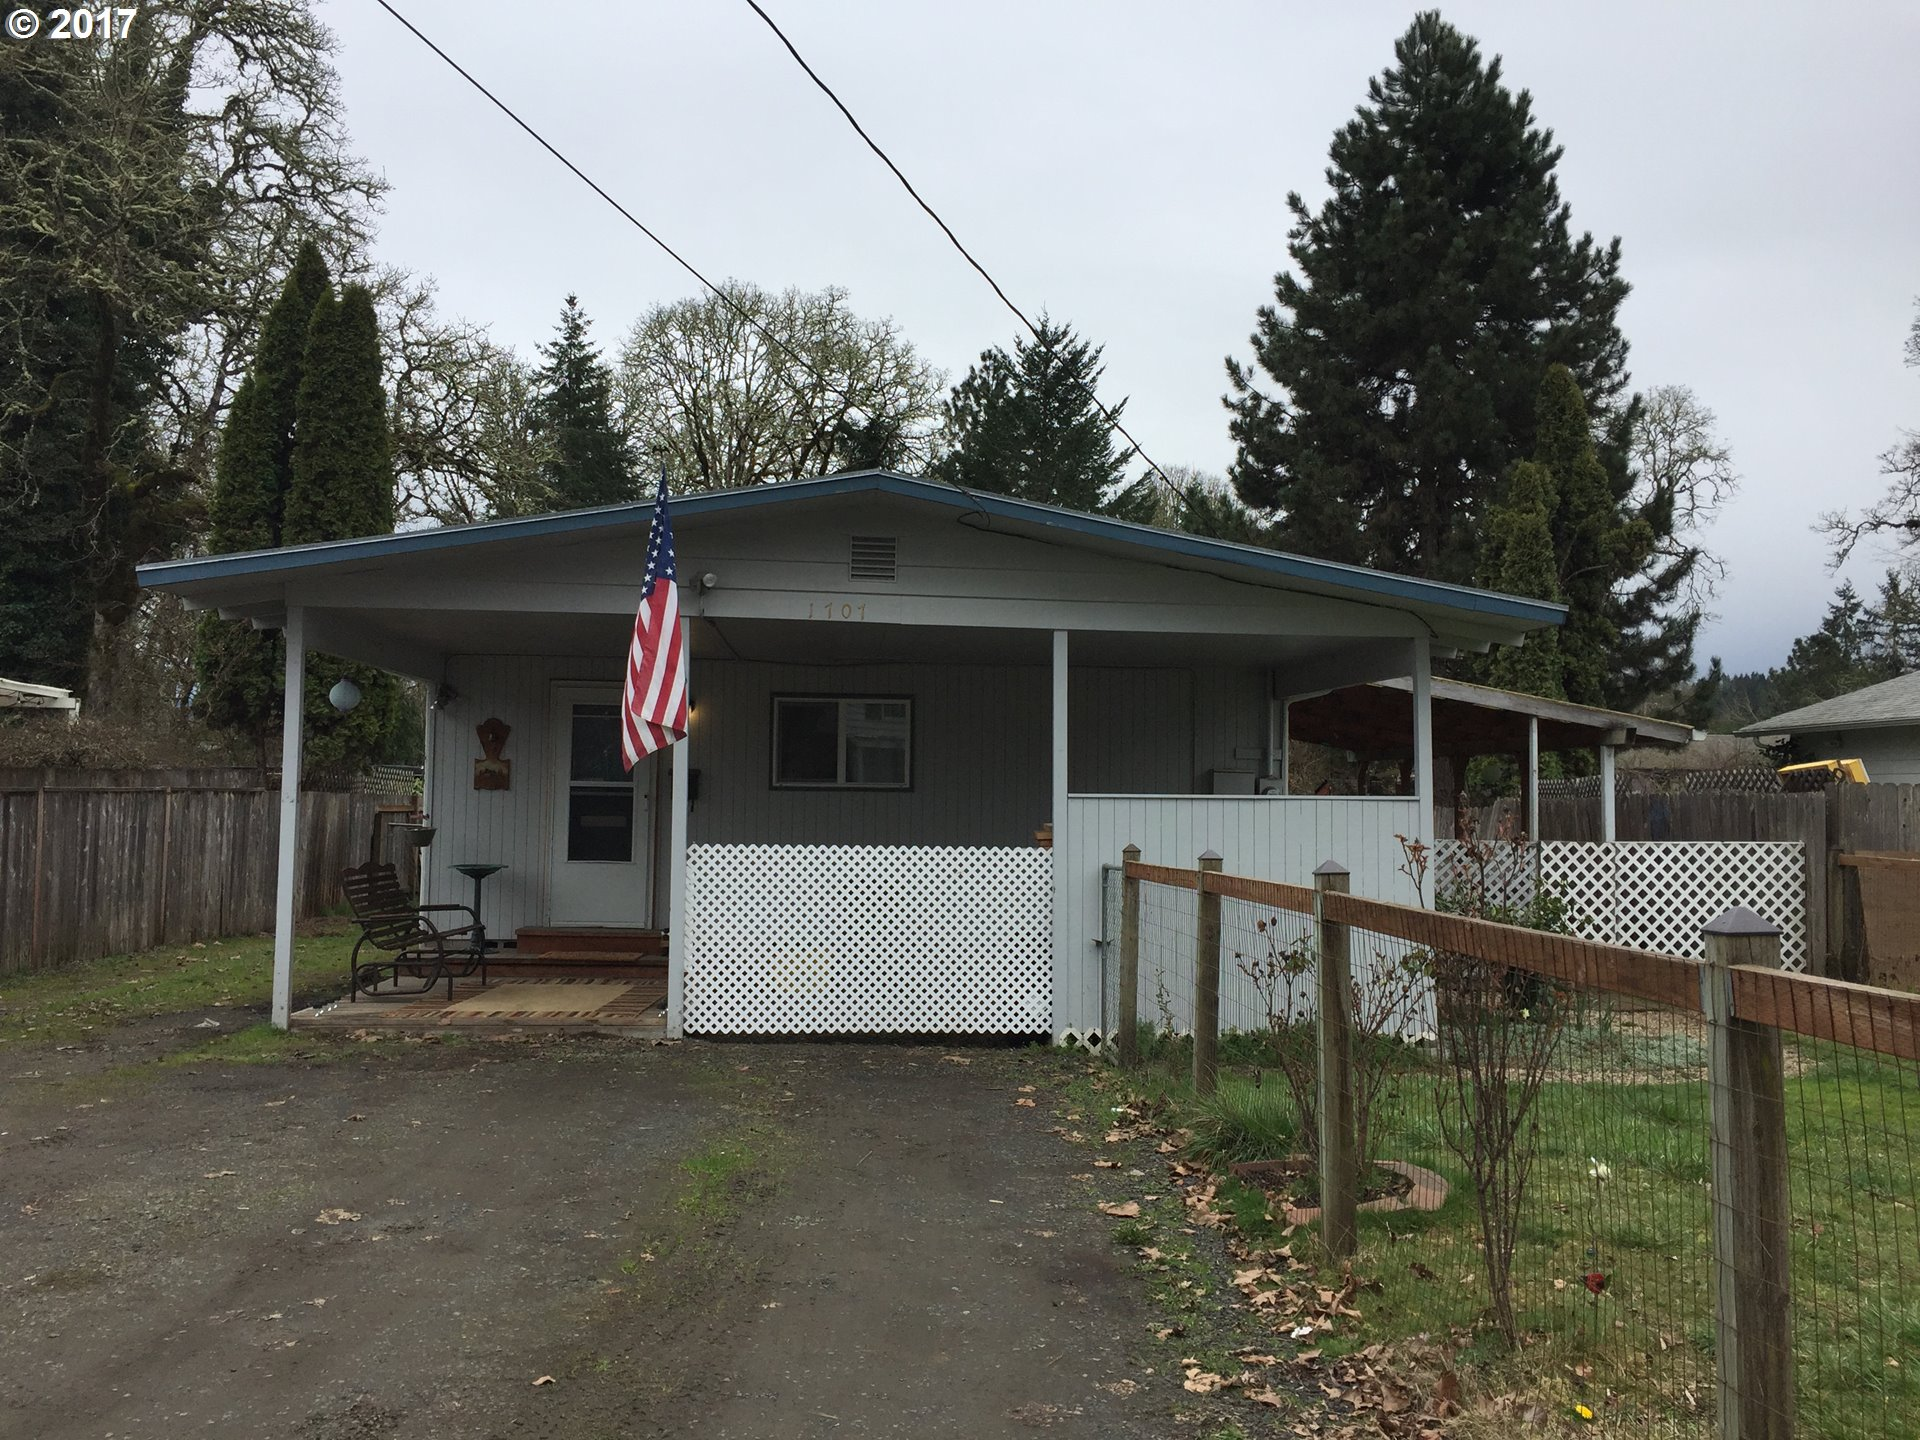 1707 W MAIN ST, Cottage Grove, OR 97424